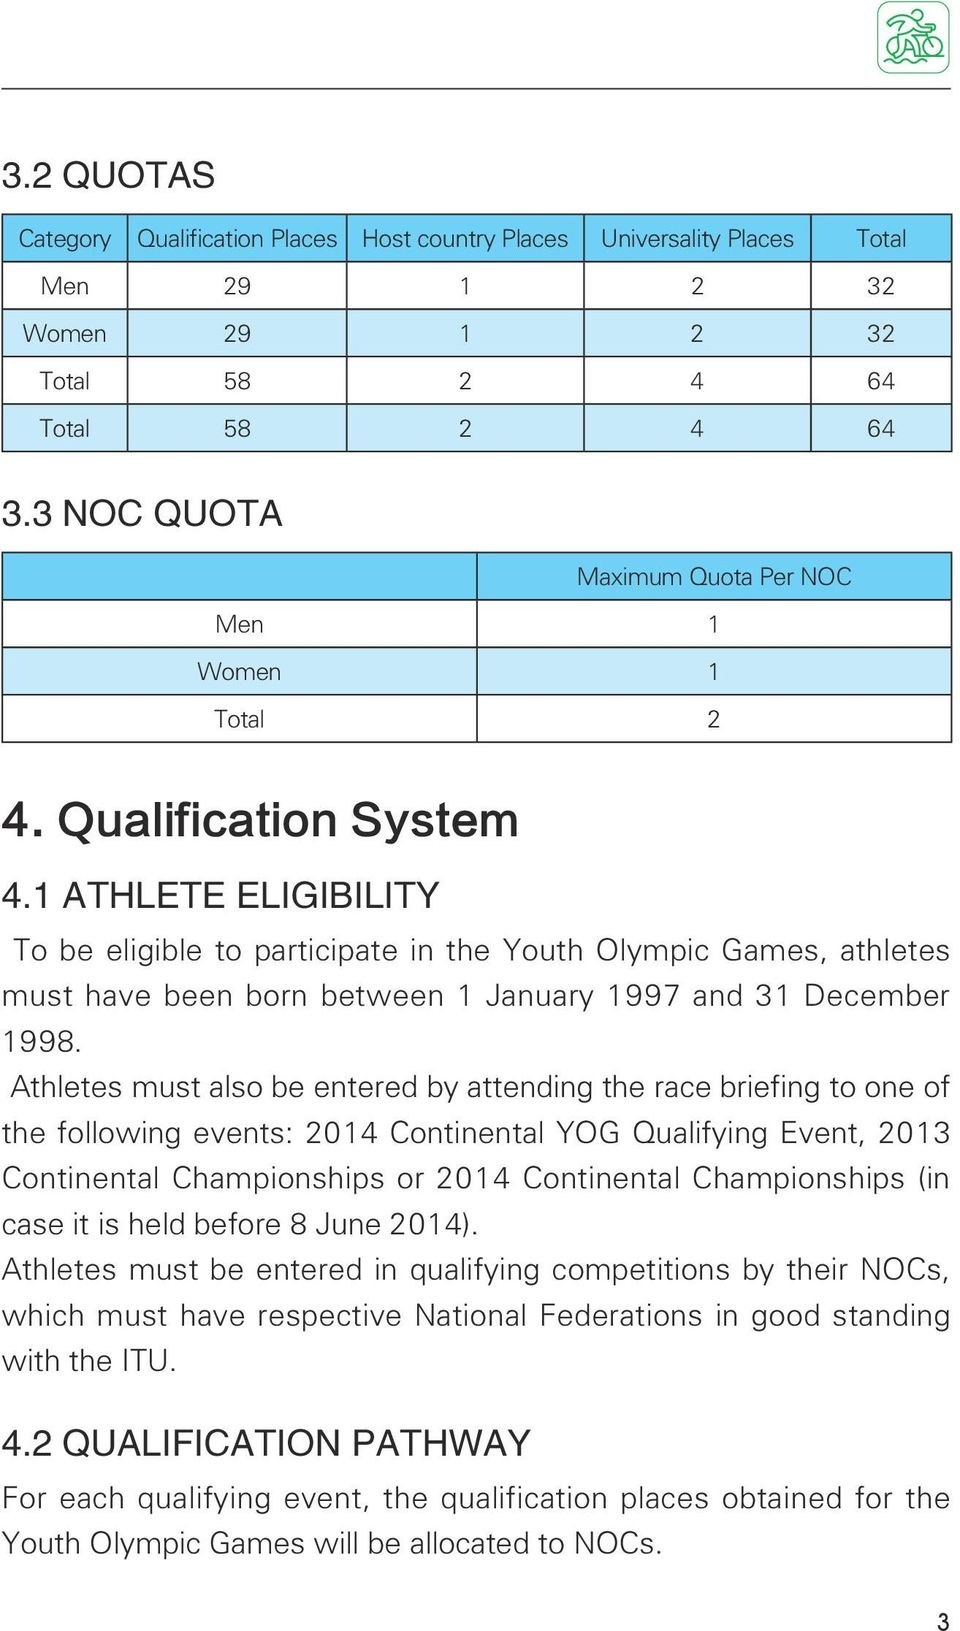 1 ATHLETE ELIGIBILITY To be eligible to participate in the Youth Olympic Games, athletes must have been born between 1 January 1997 and 31 December 1998.